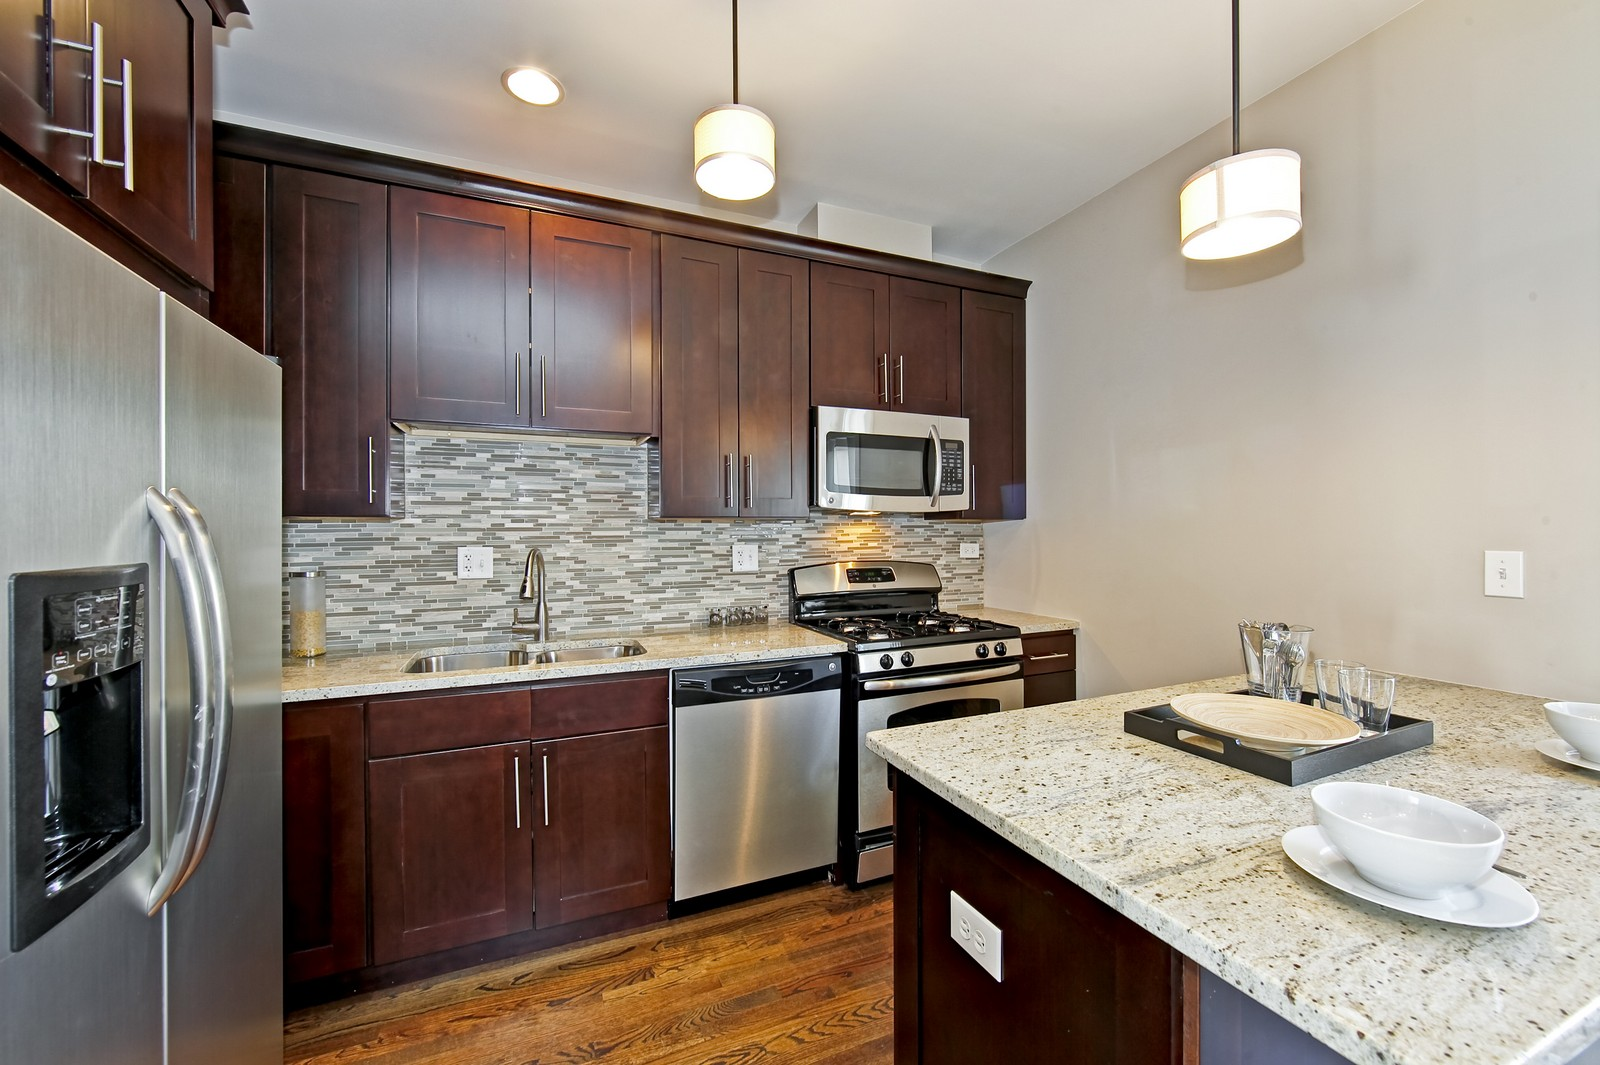 Real Estate Photography - 2422 W Bross, Chicago, IL, 60608 - Kitchen